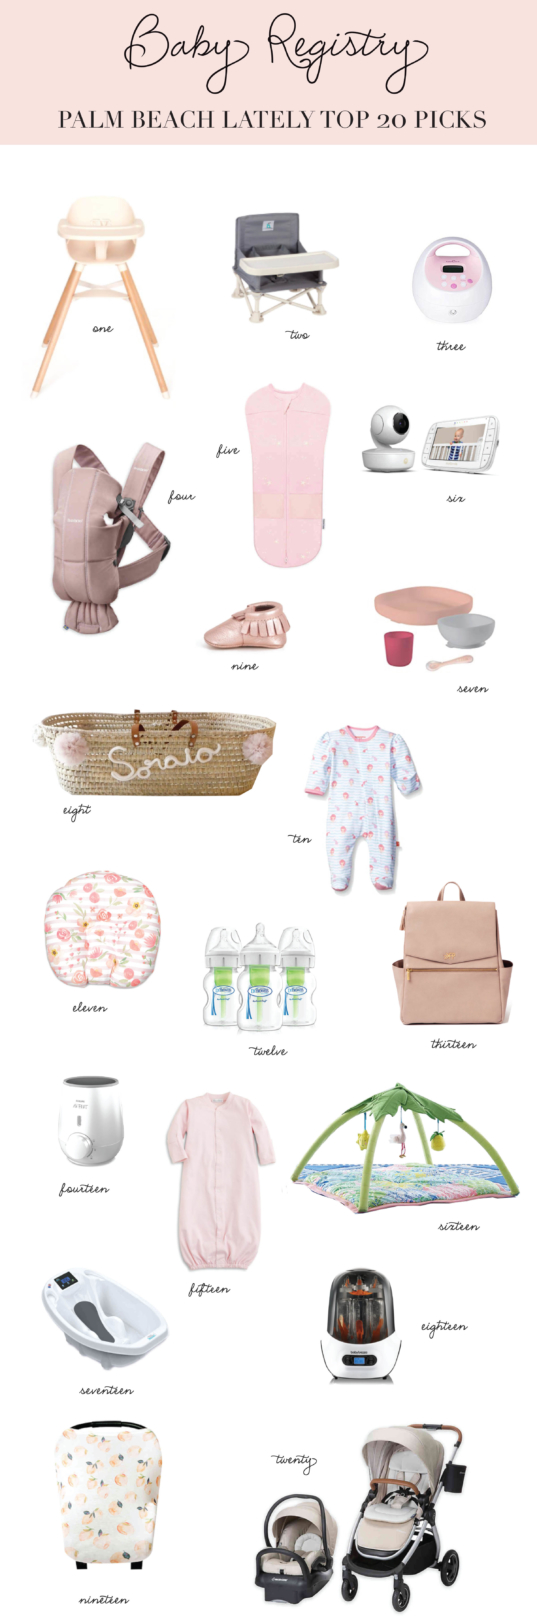 Palm Beach Lately Beth Baby Registry